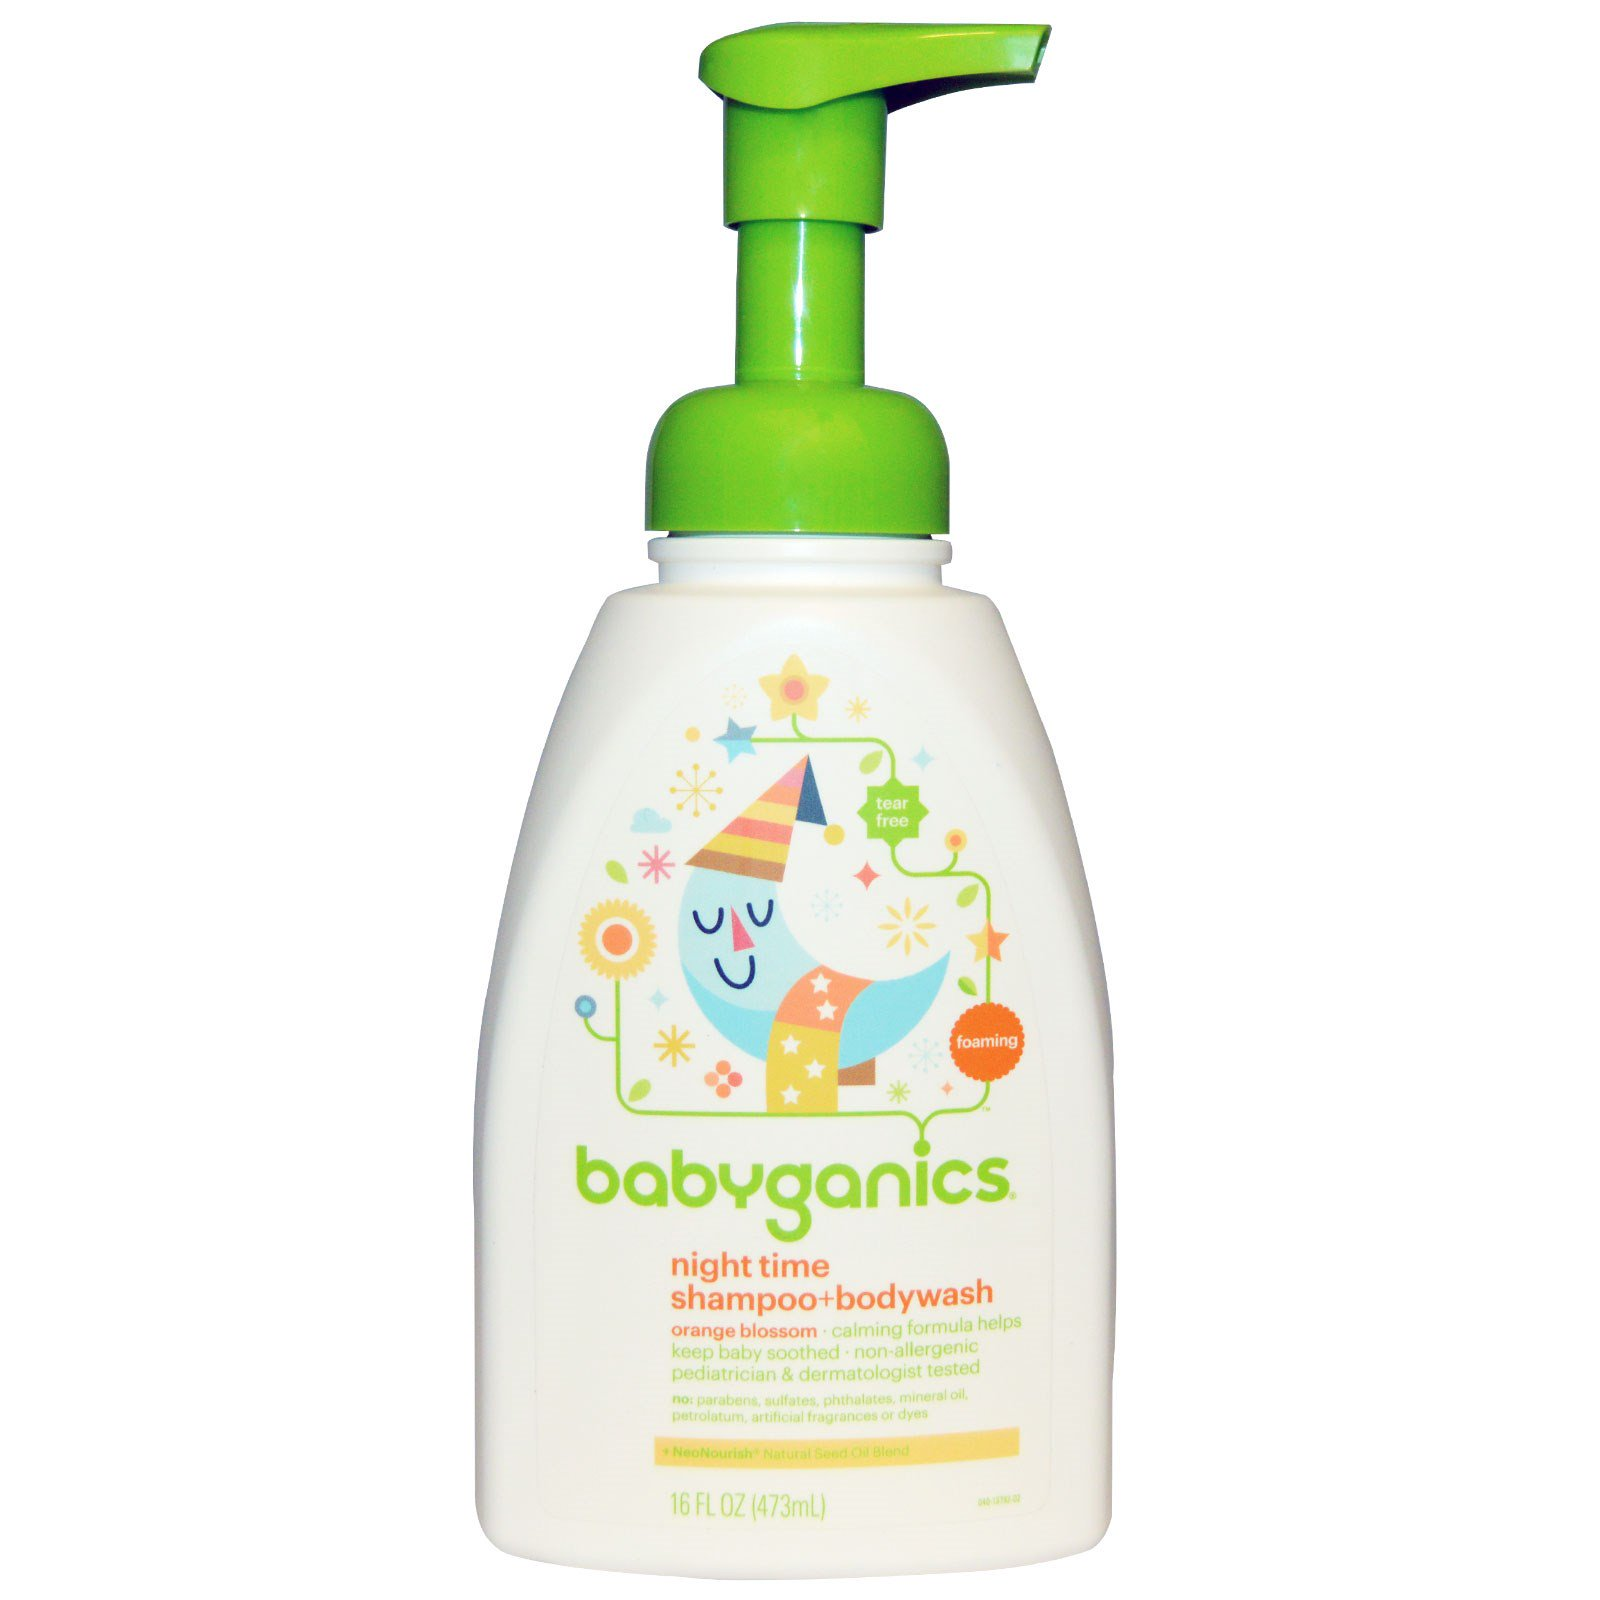 BabyGanics, Night Time Shampoo + Bodywash, Orange Blossom, 16 fl oz (pack of 6) by